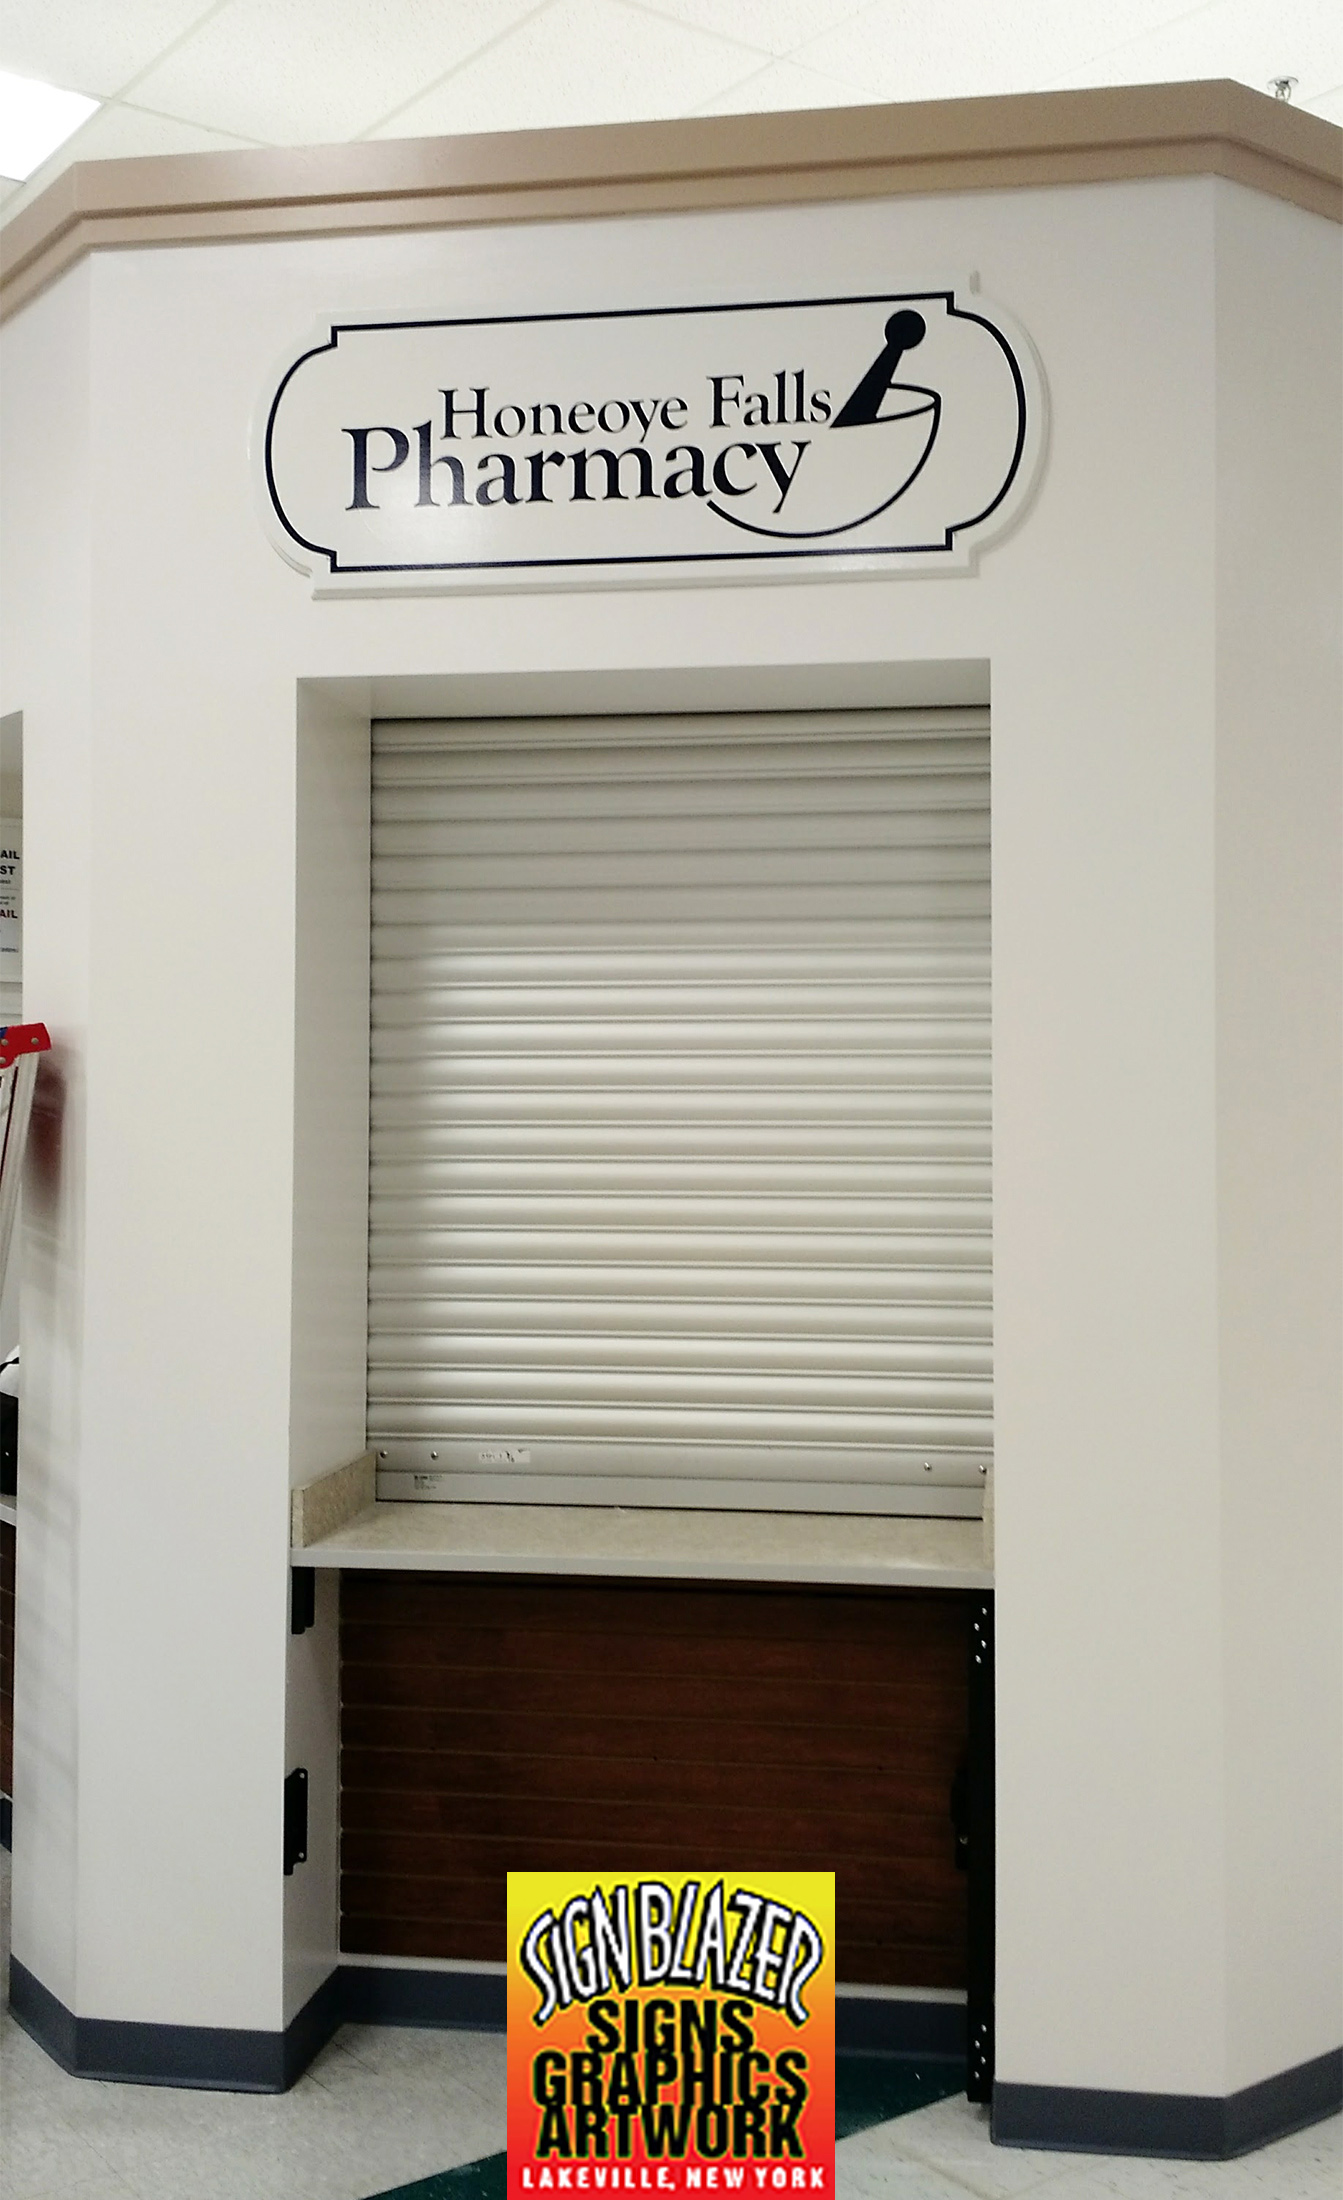 Honeoye Falls Pharmacy